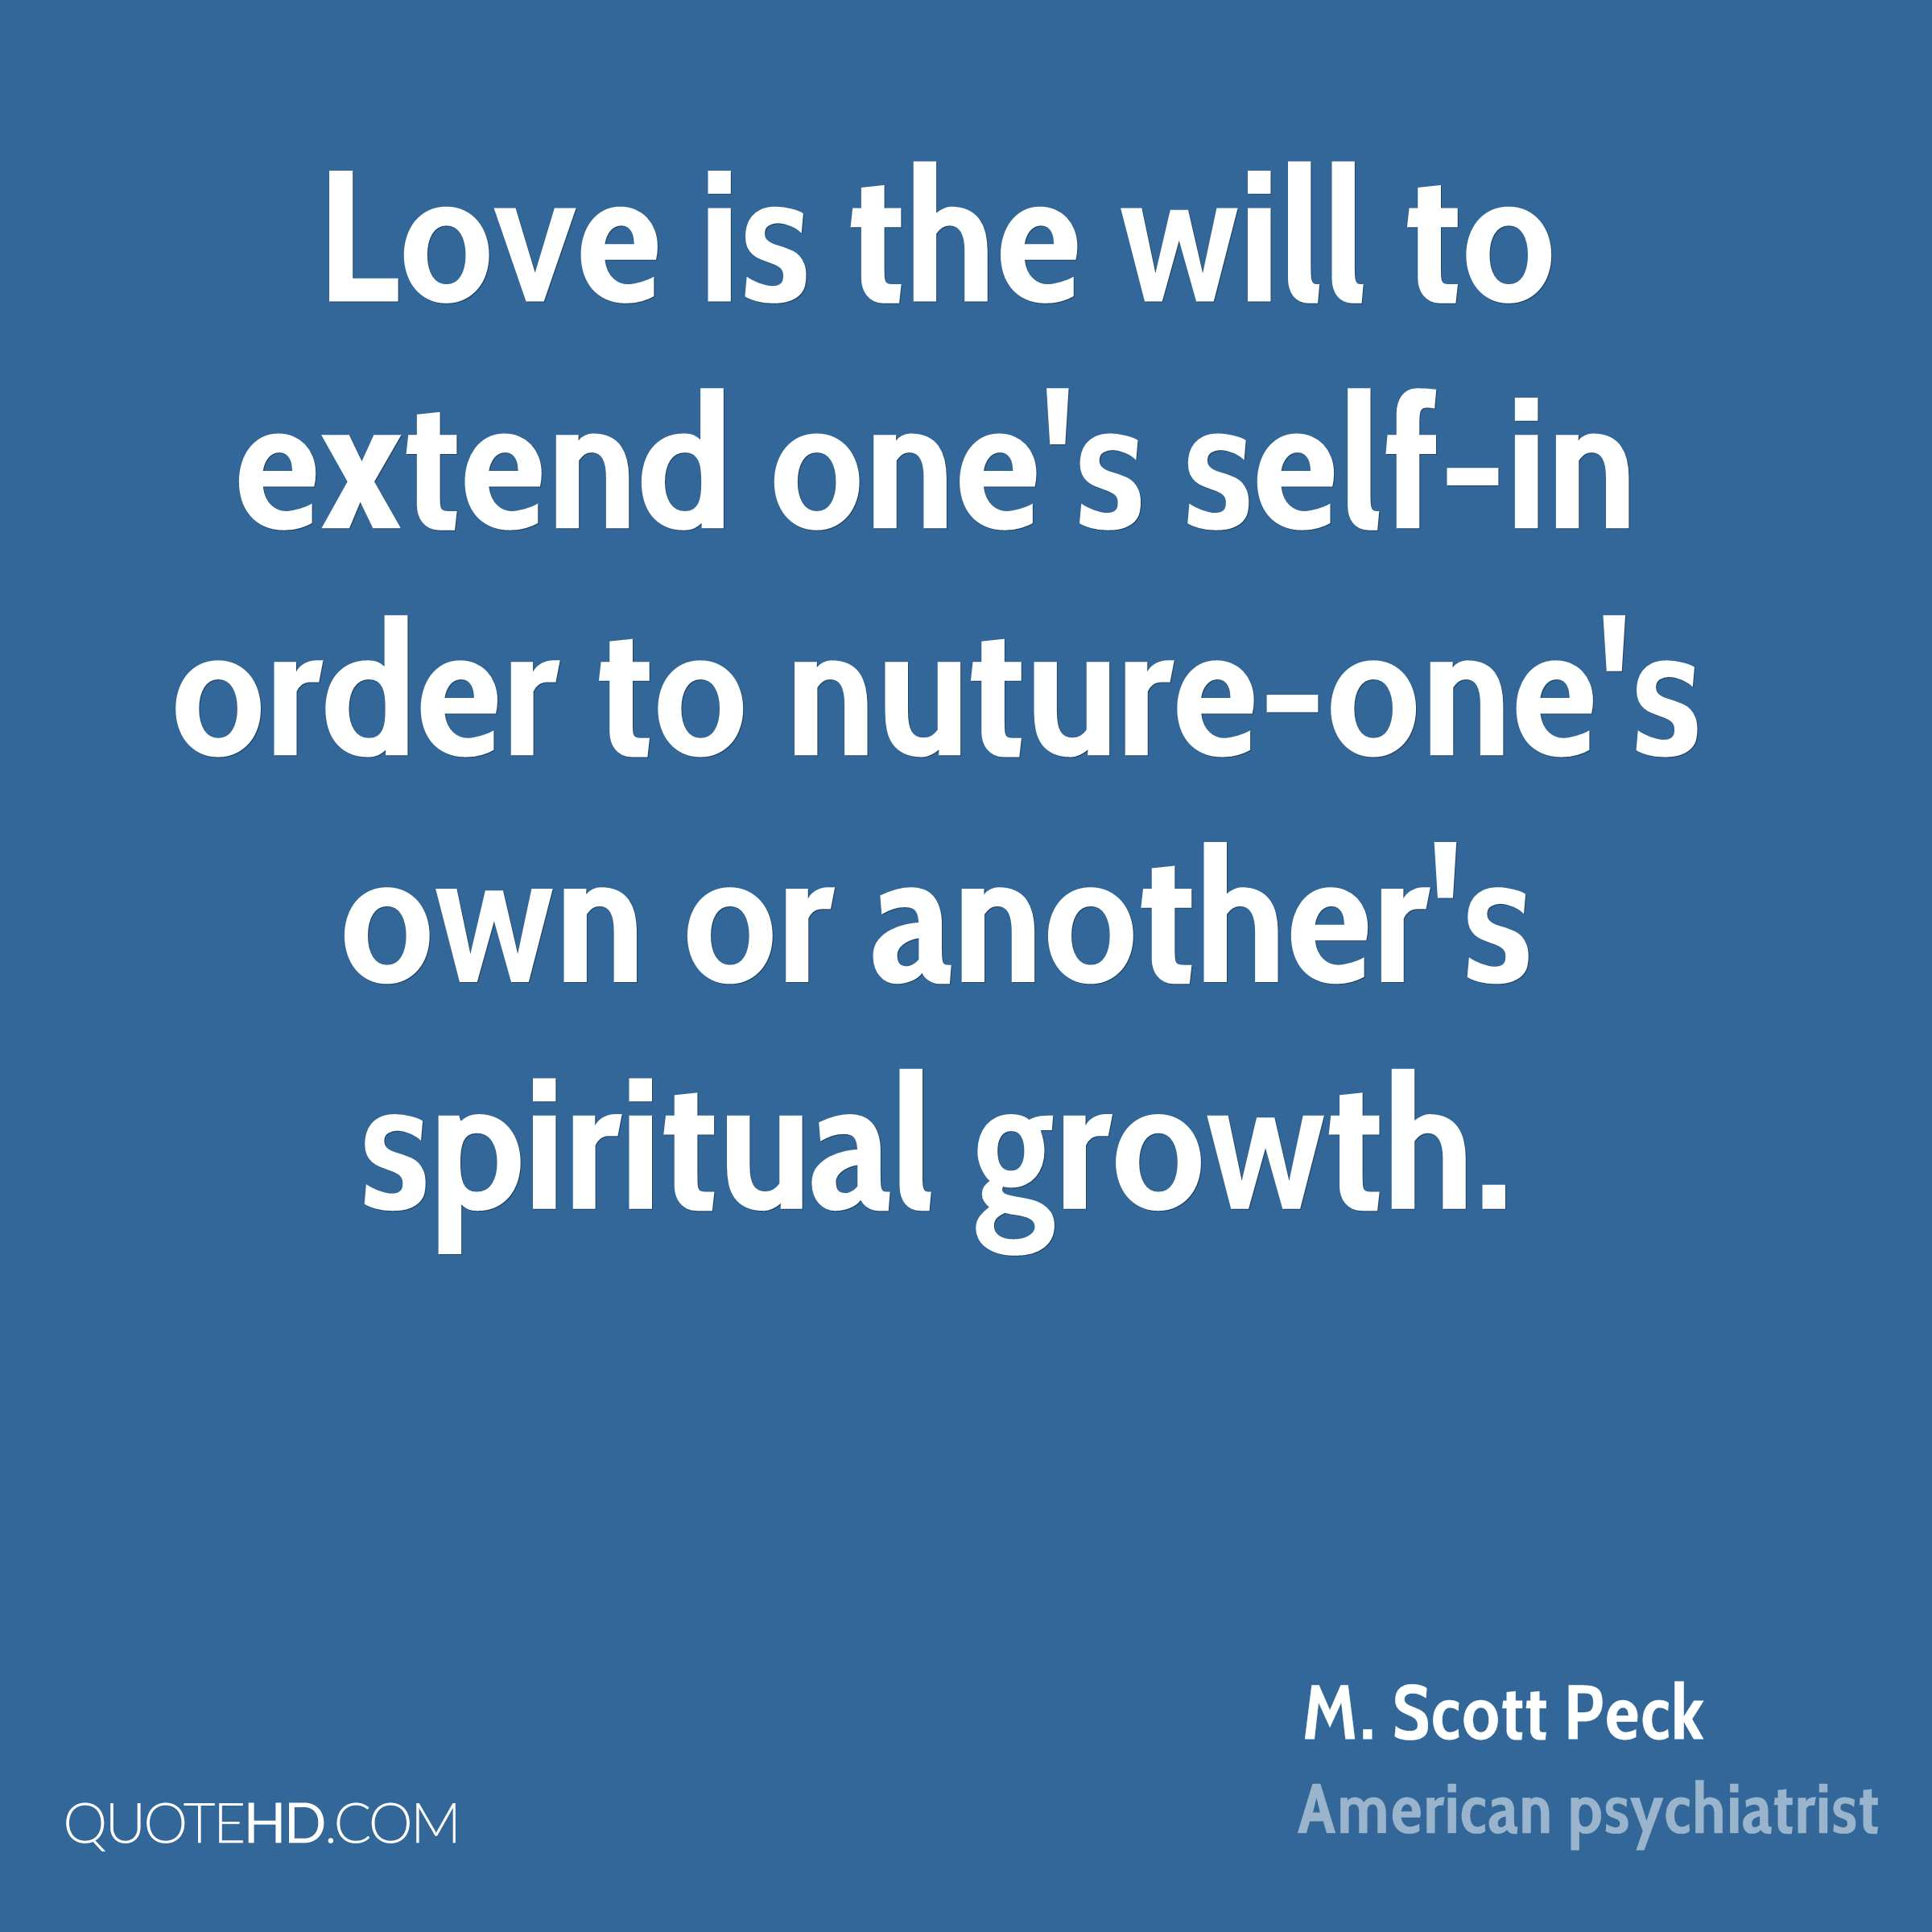 Love is the will to extend one's self-in order to nuture-one's own or another's spiritual growth.